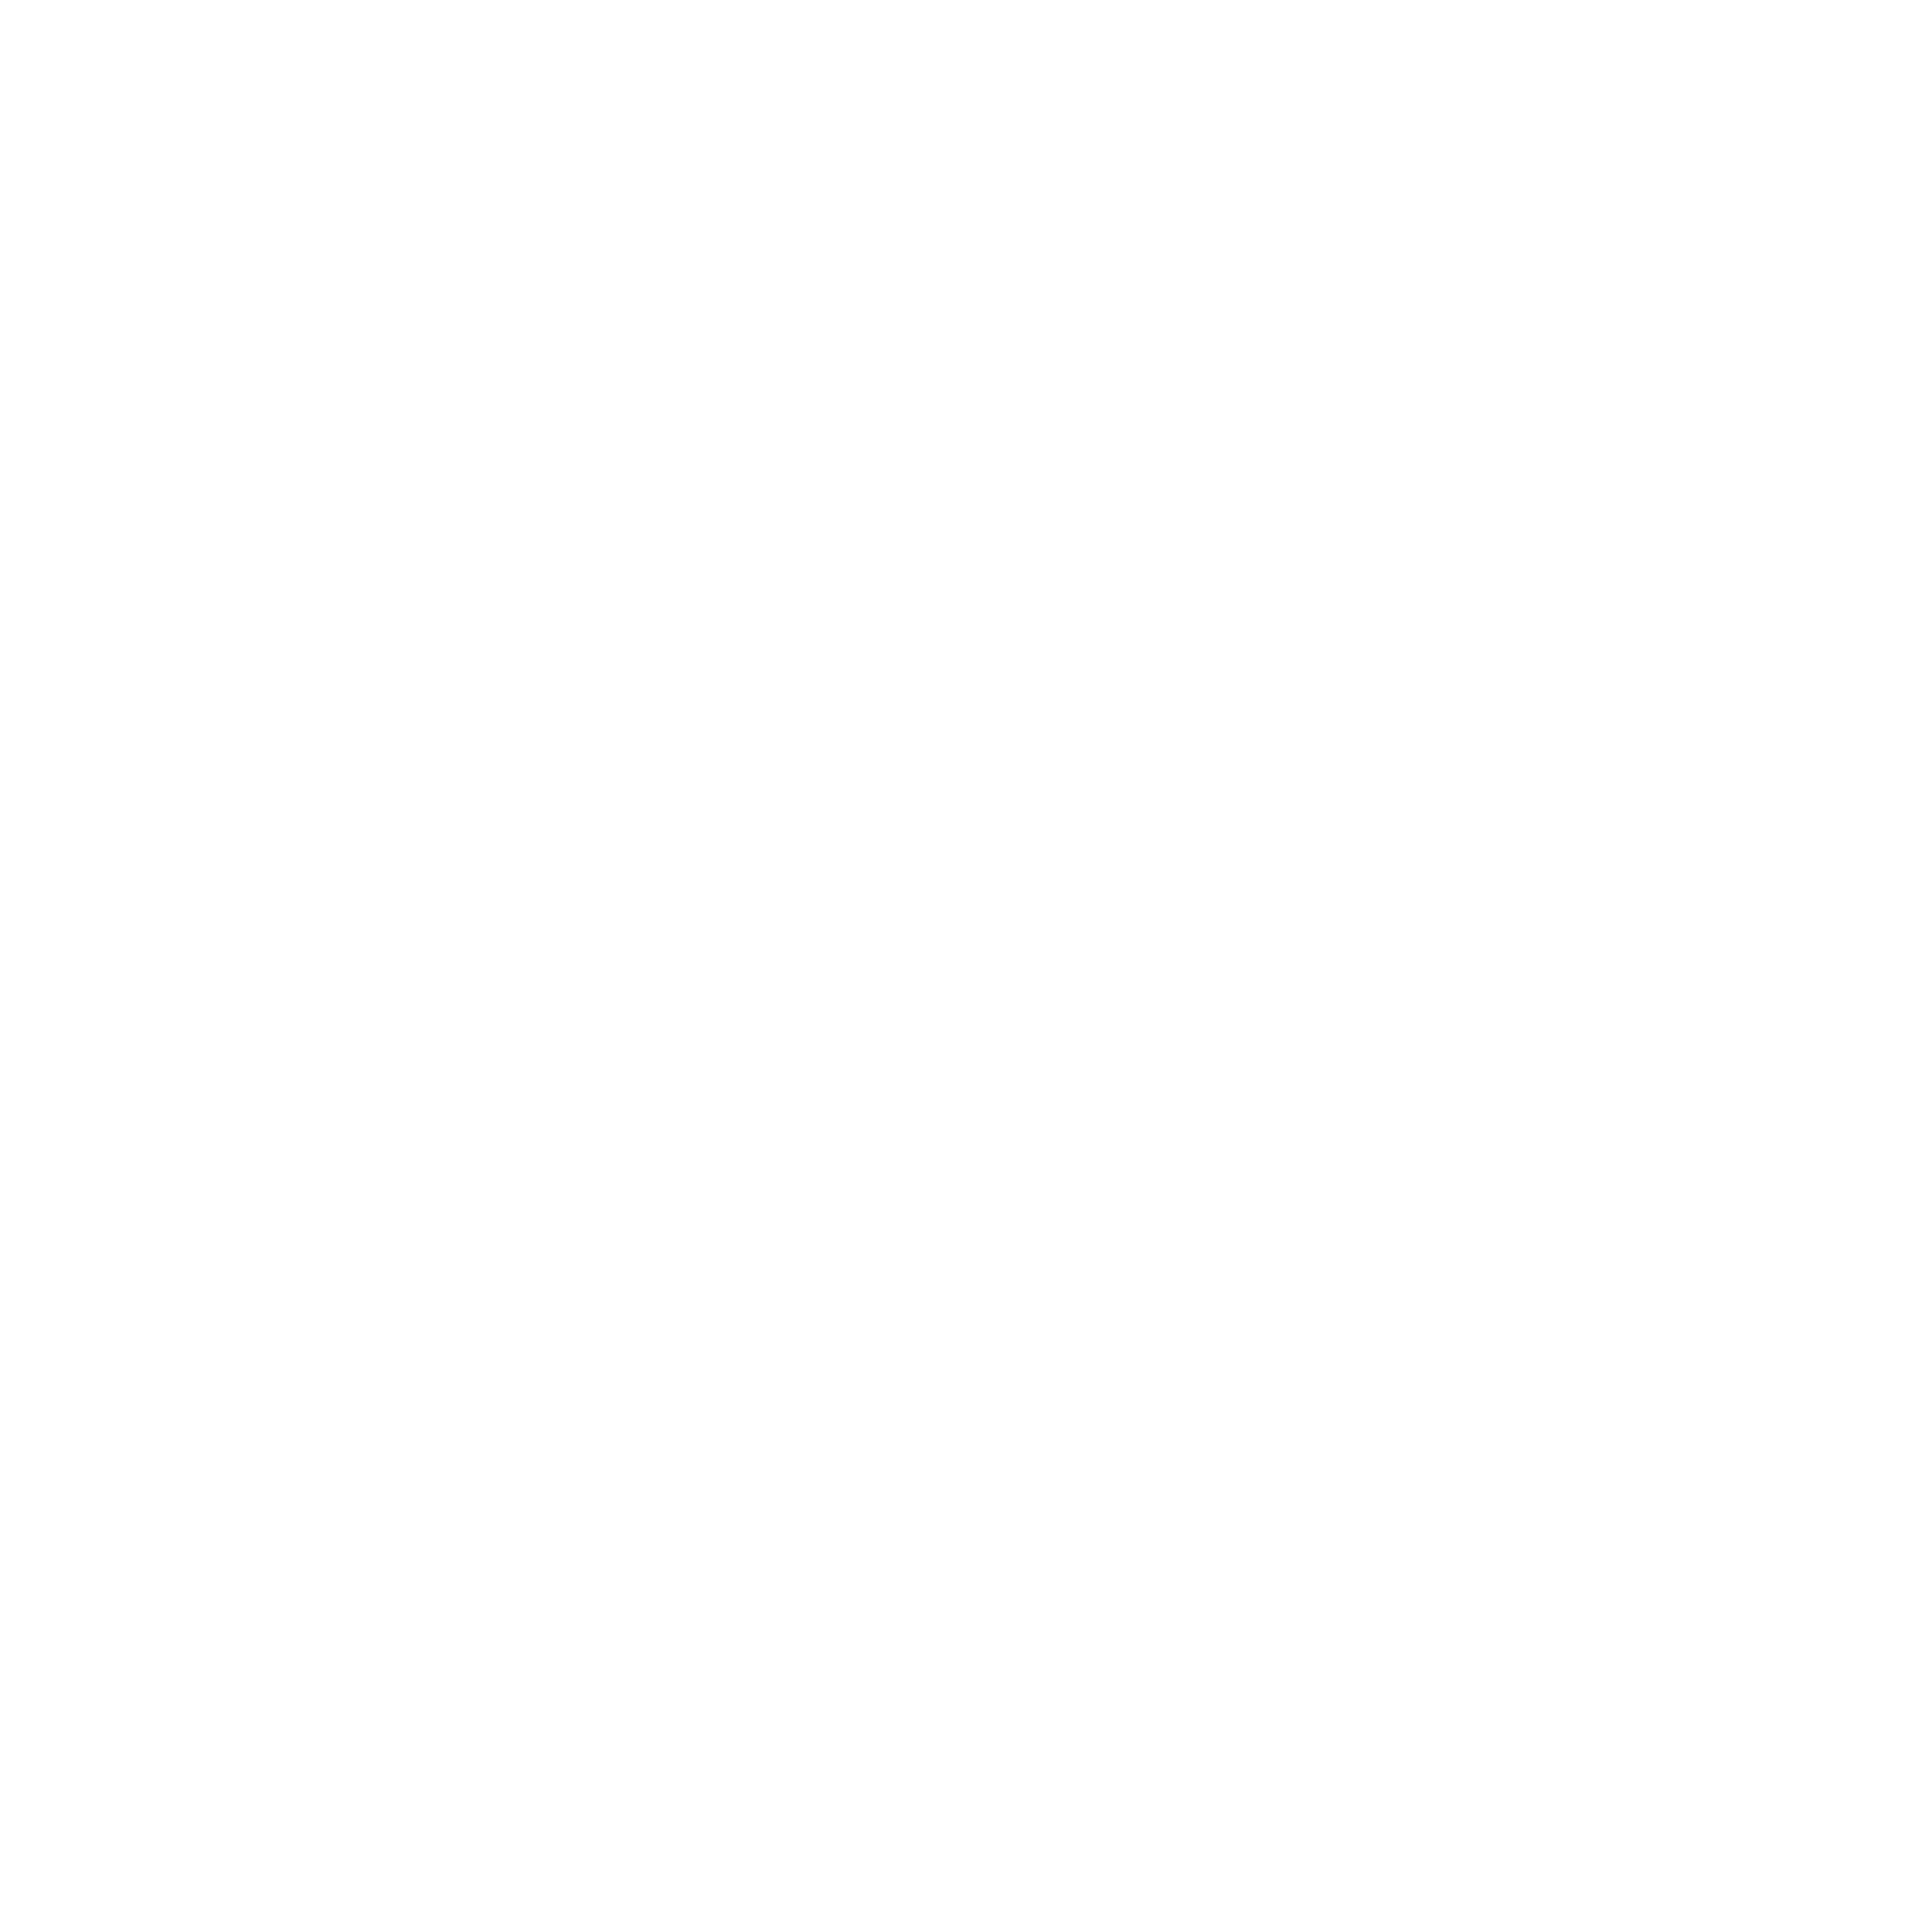 Ice Weather Snowflake PNG Image